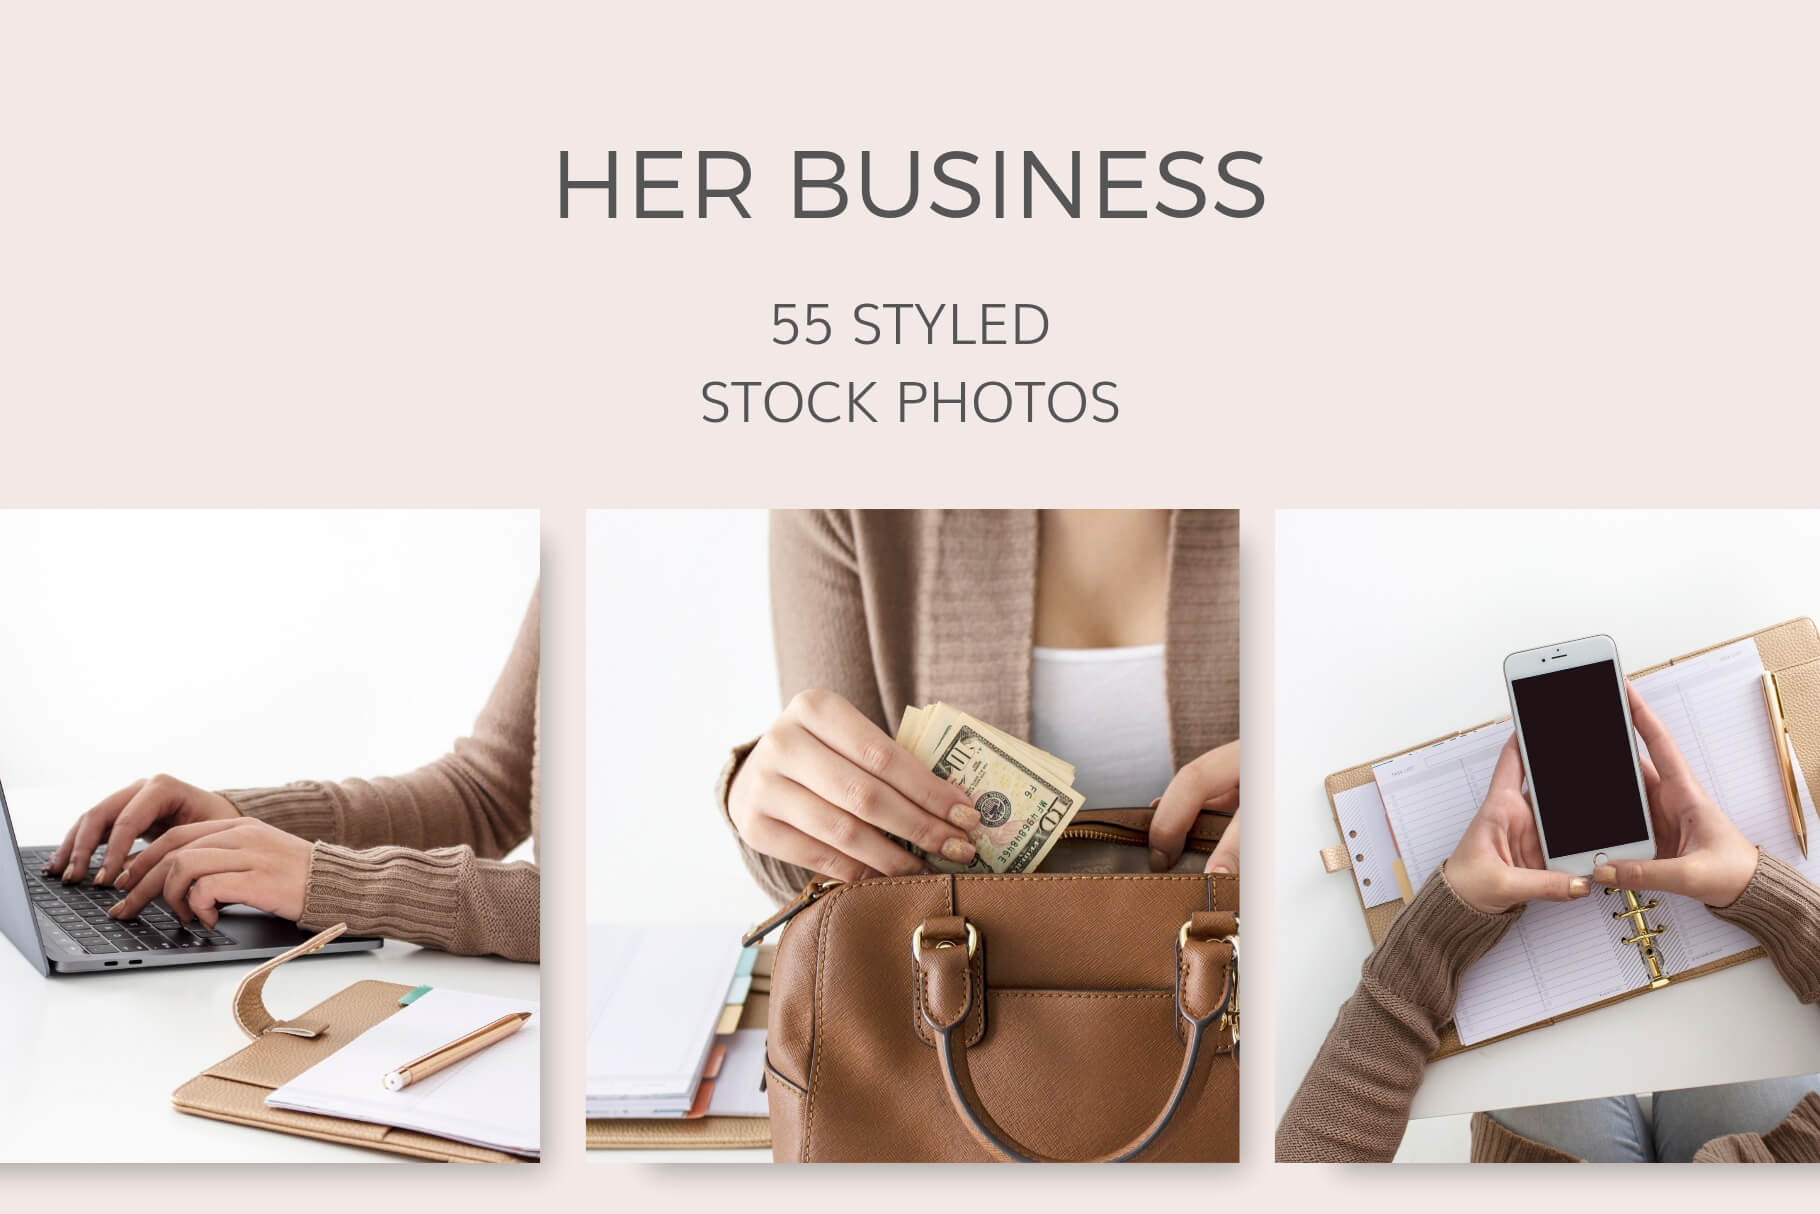 Her Business Styled Stock Photos